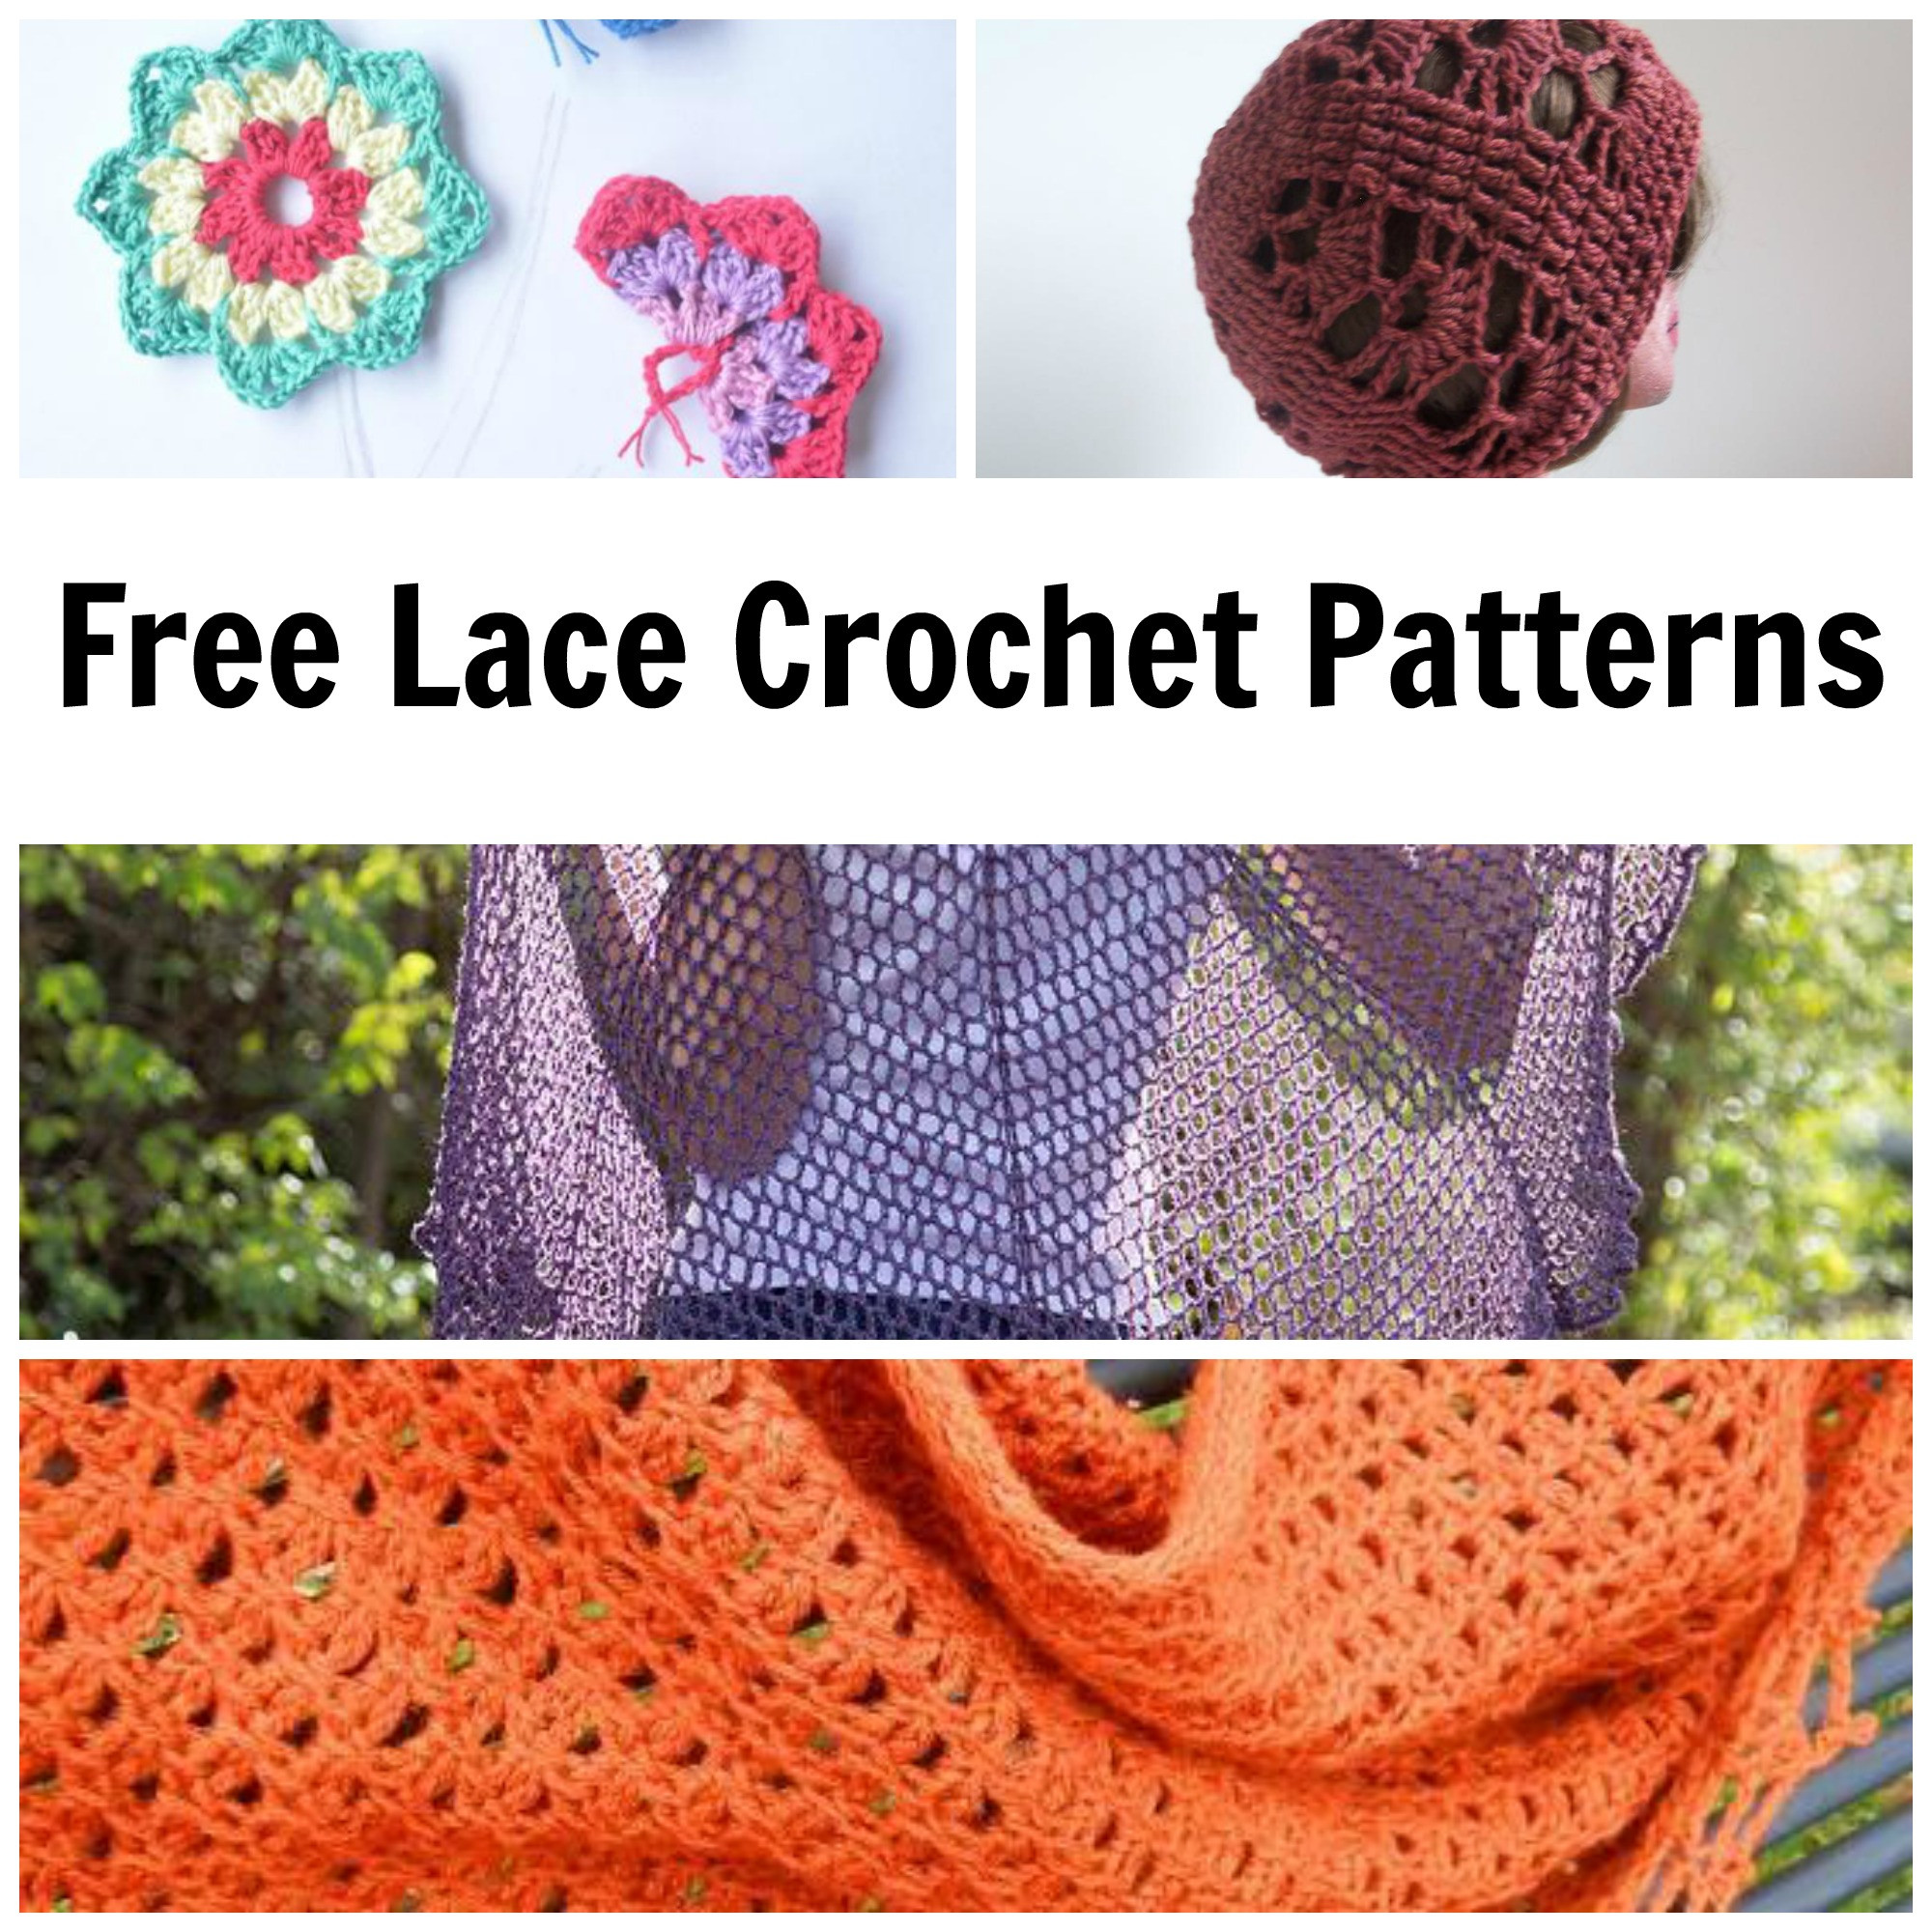 7 Classic Beautiful FREE Lace Crochet Patterns